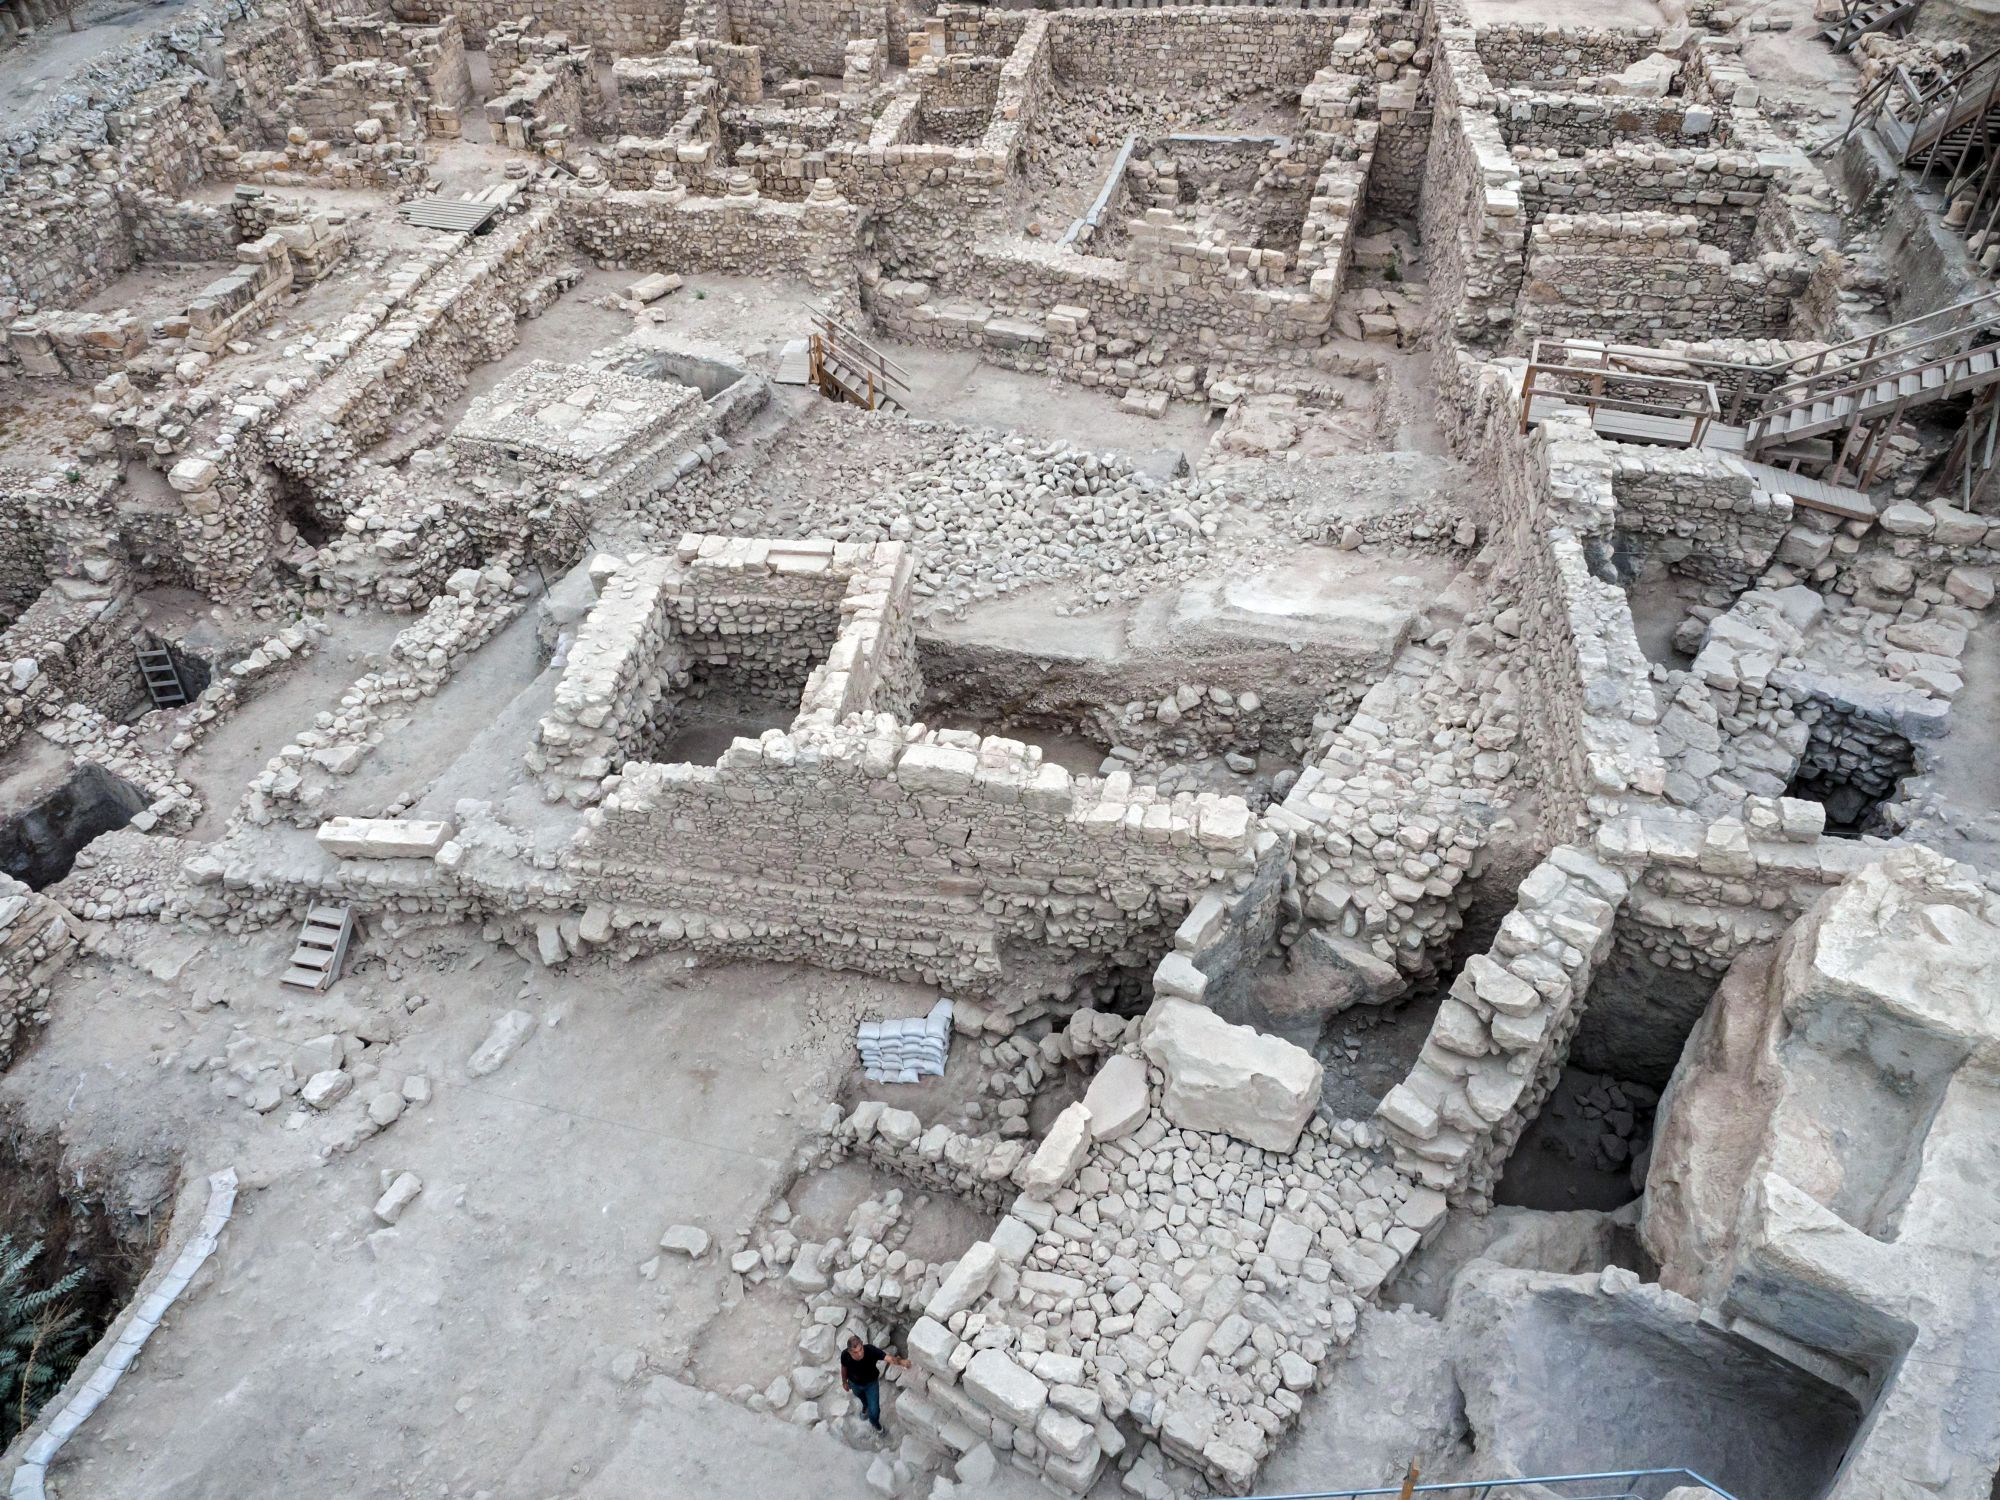 Givati Parking Lot excavation in the City of David. Credit Asaf Peretz,  Courtesy of the Israel Antiquities Authority